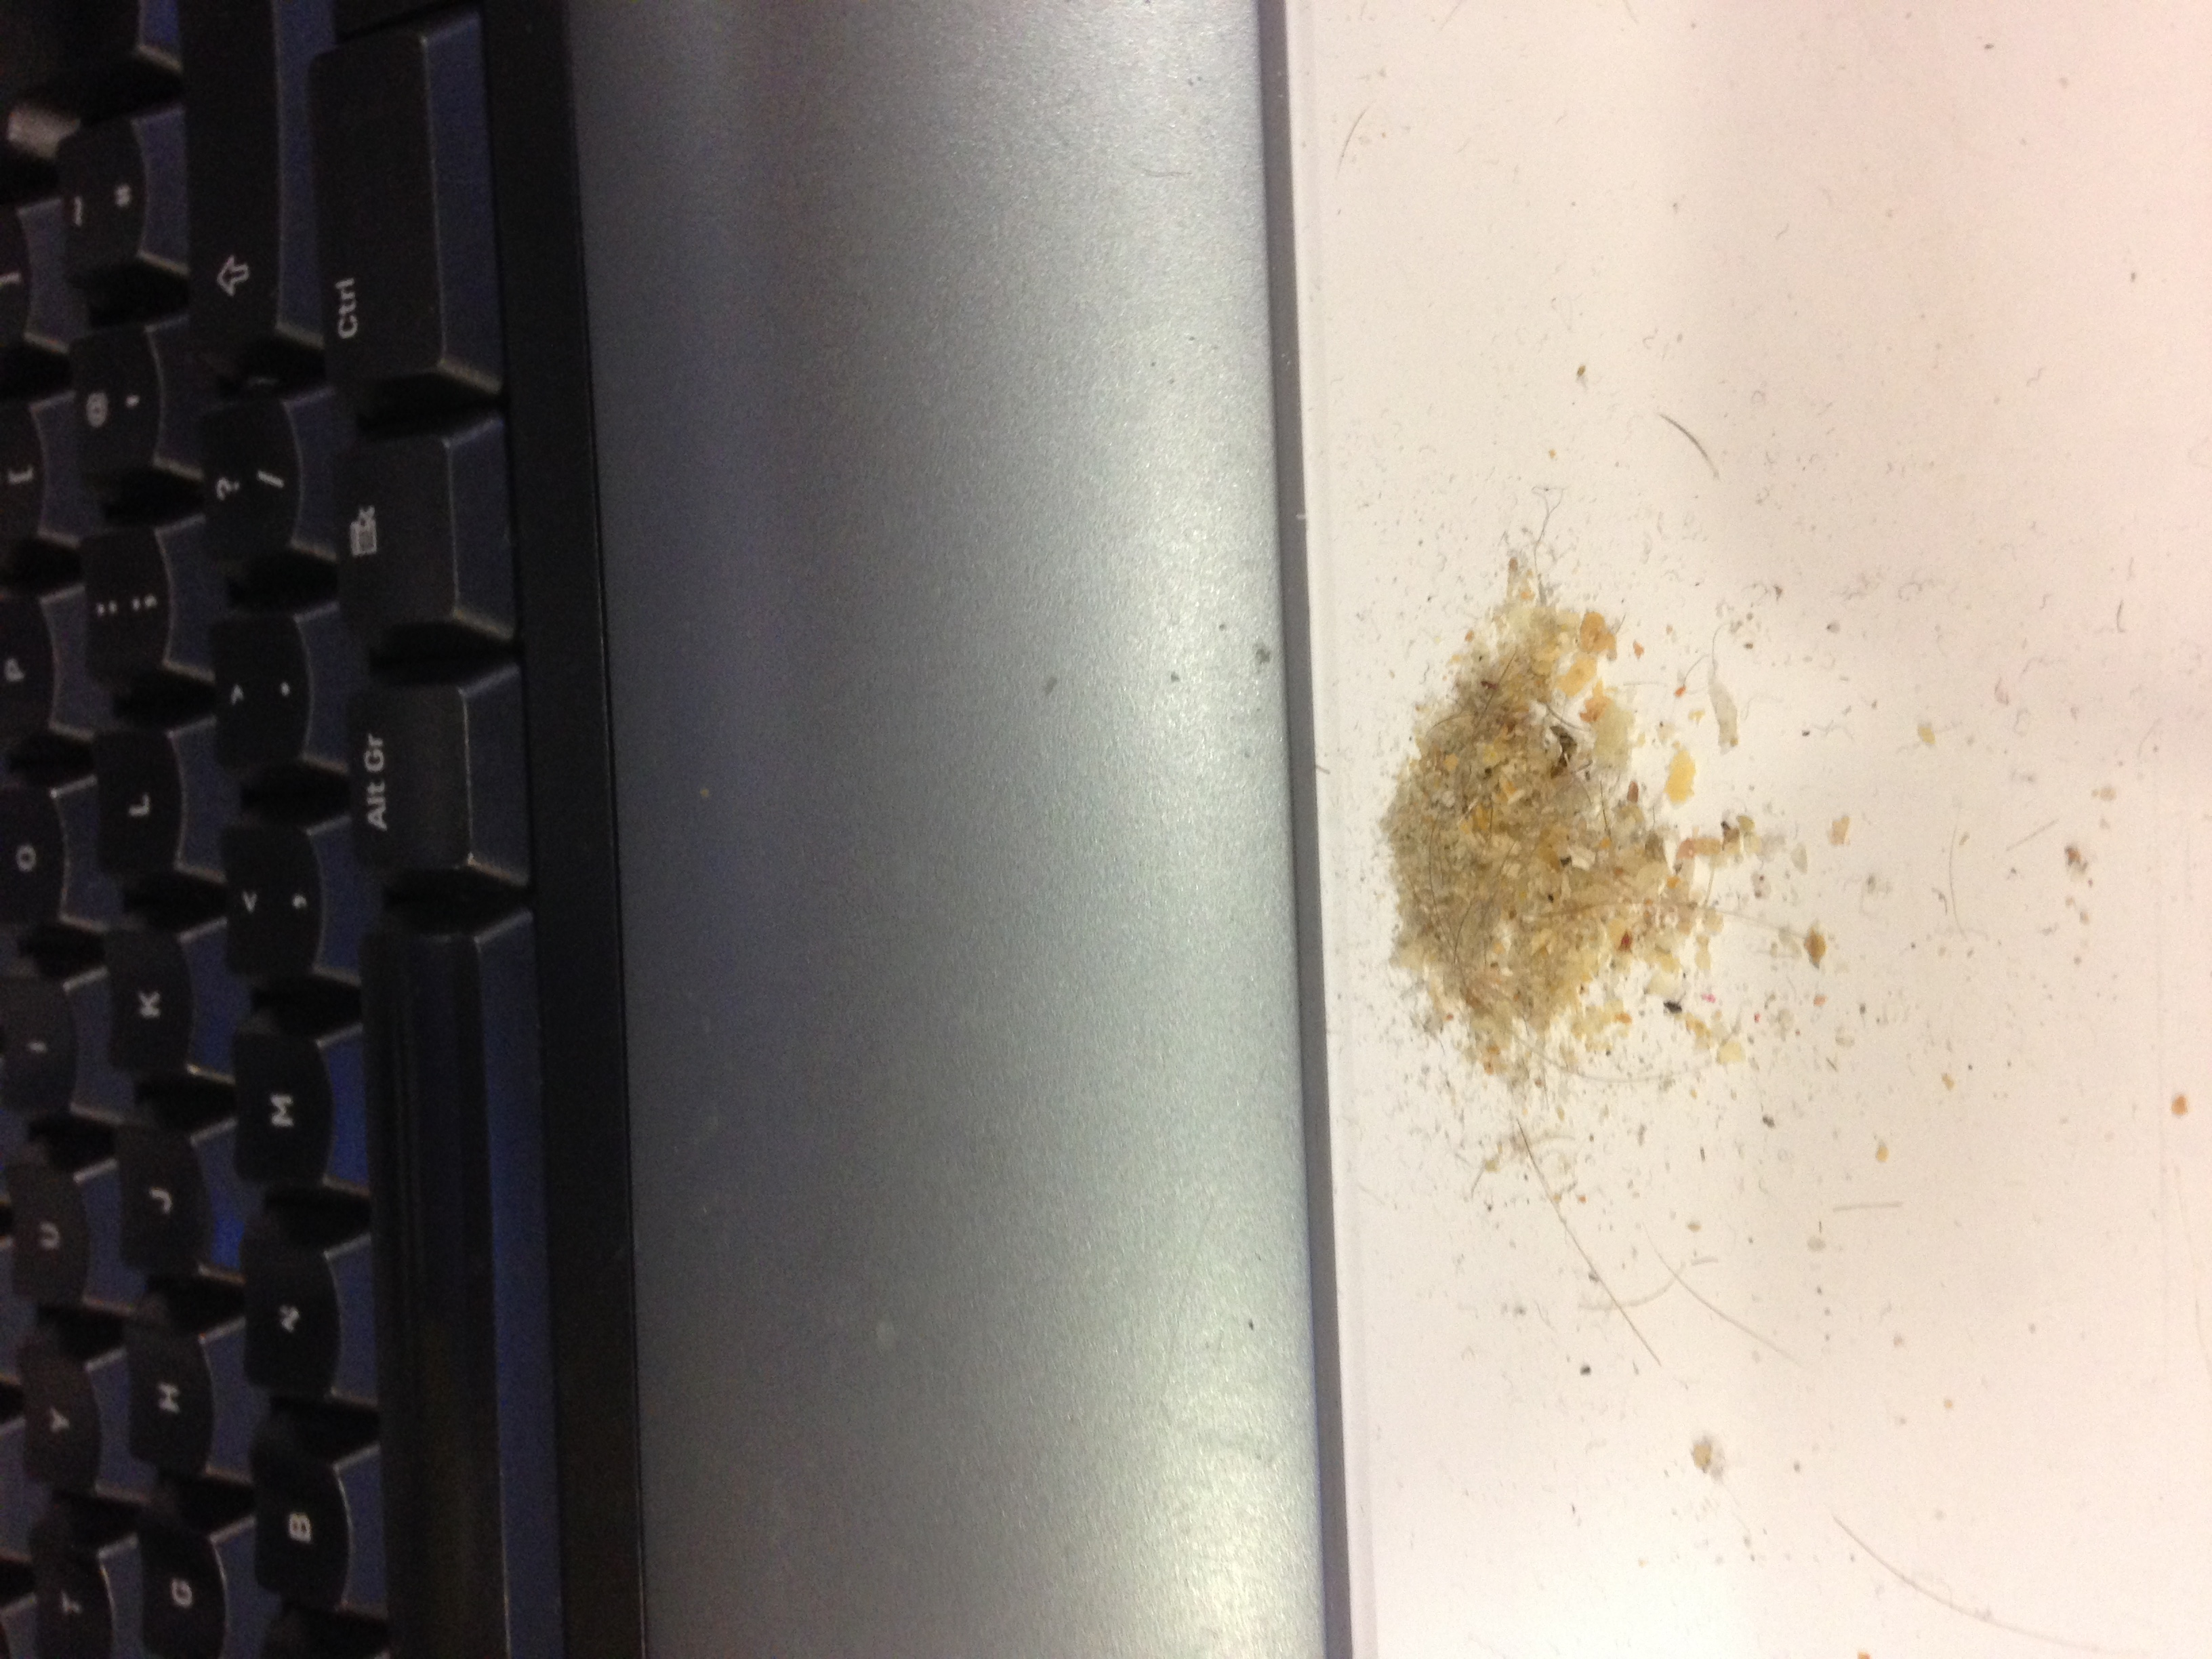 Dirt from after cleaning a dirty keyboard